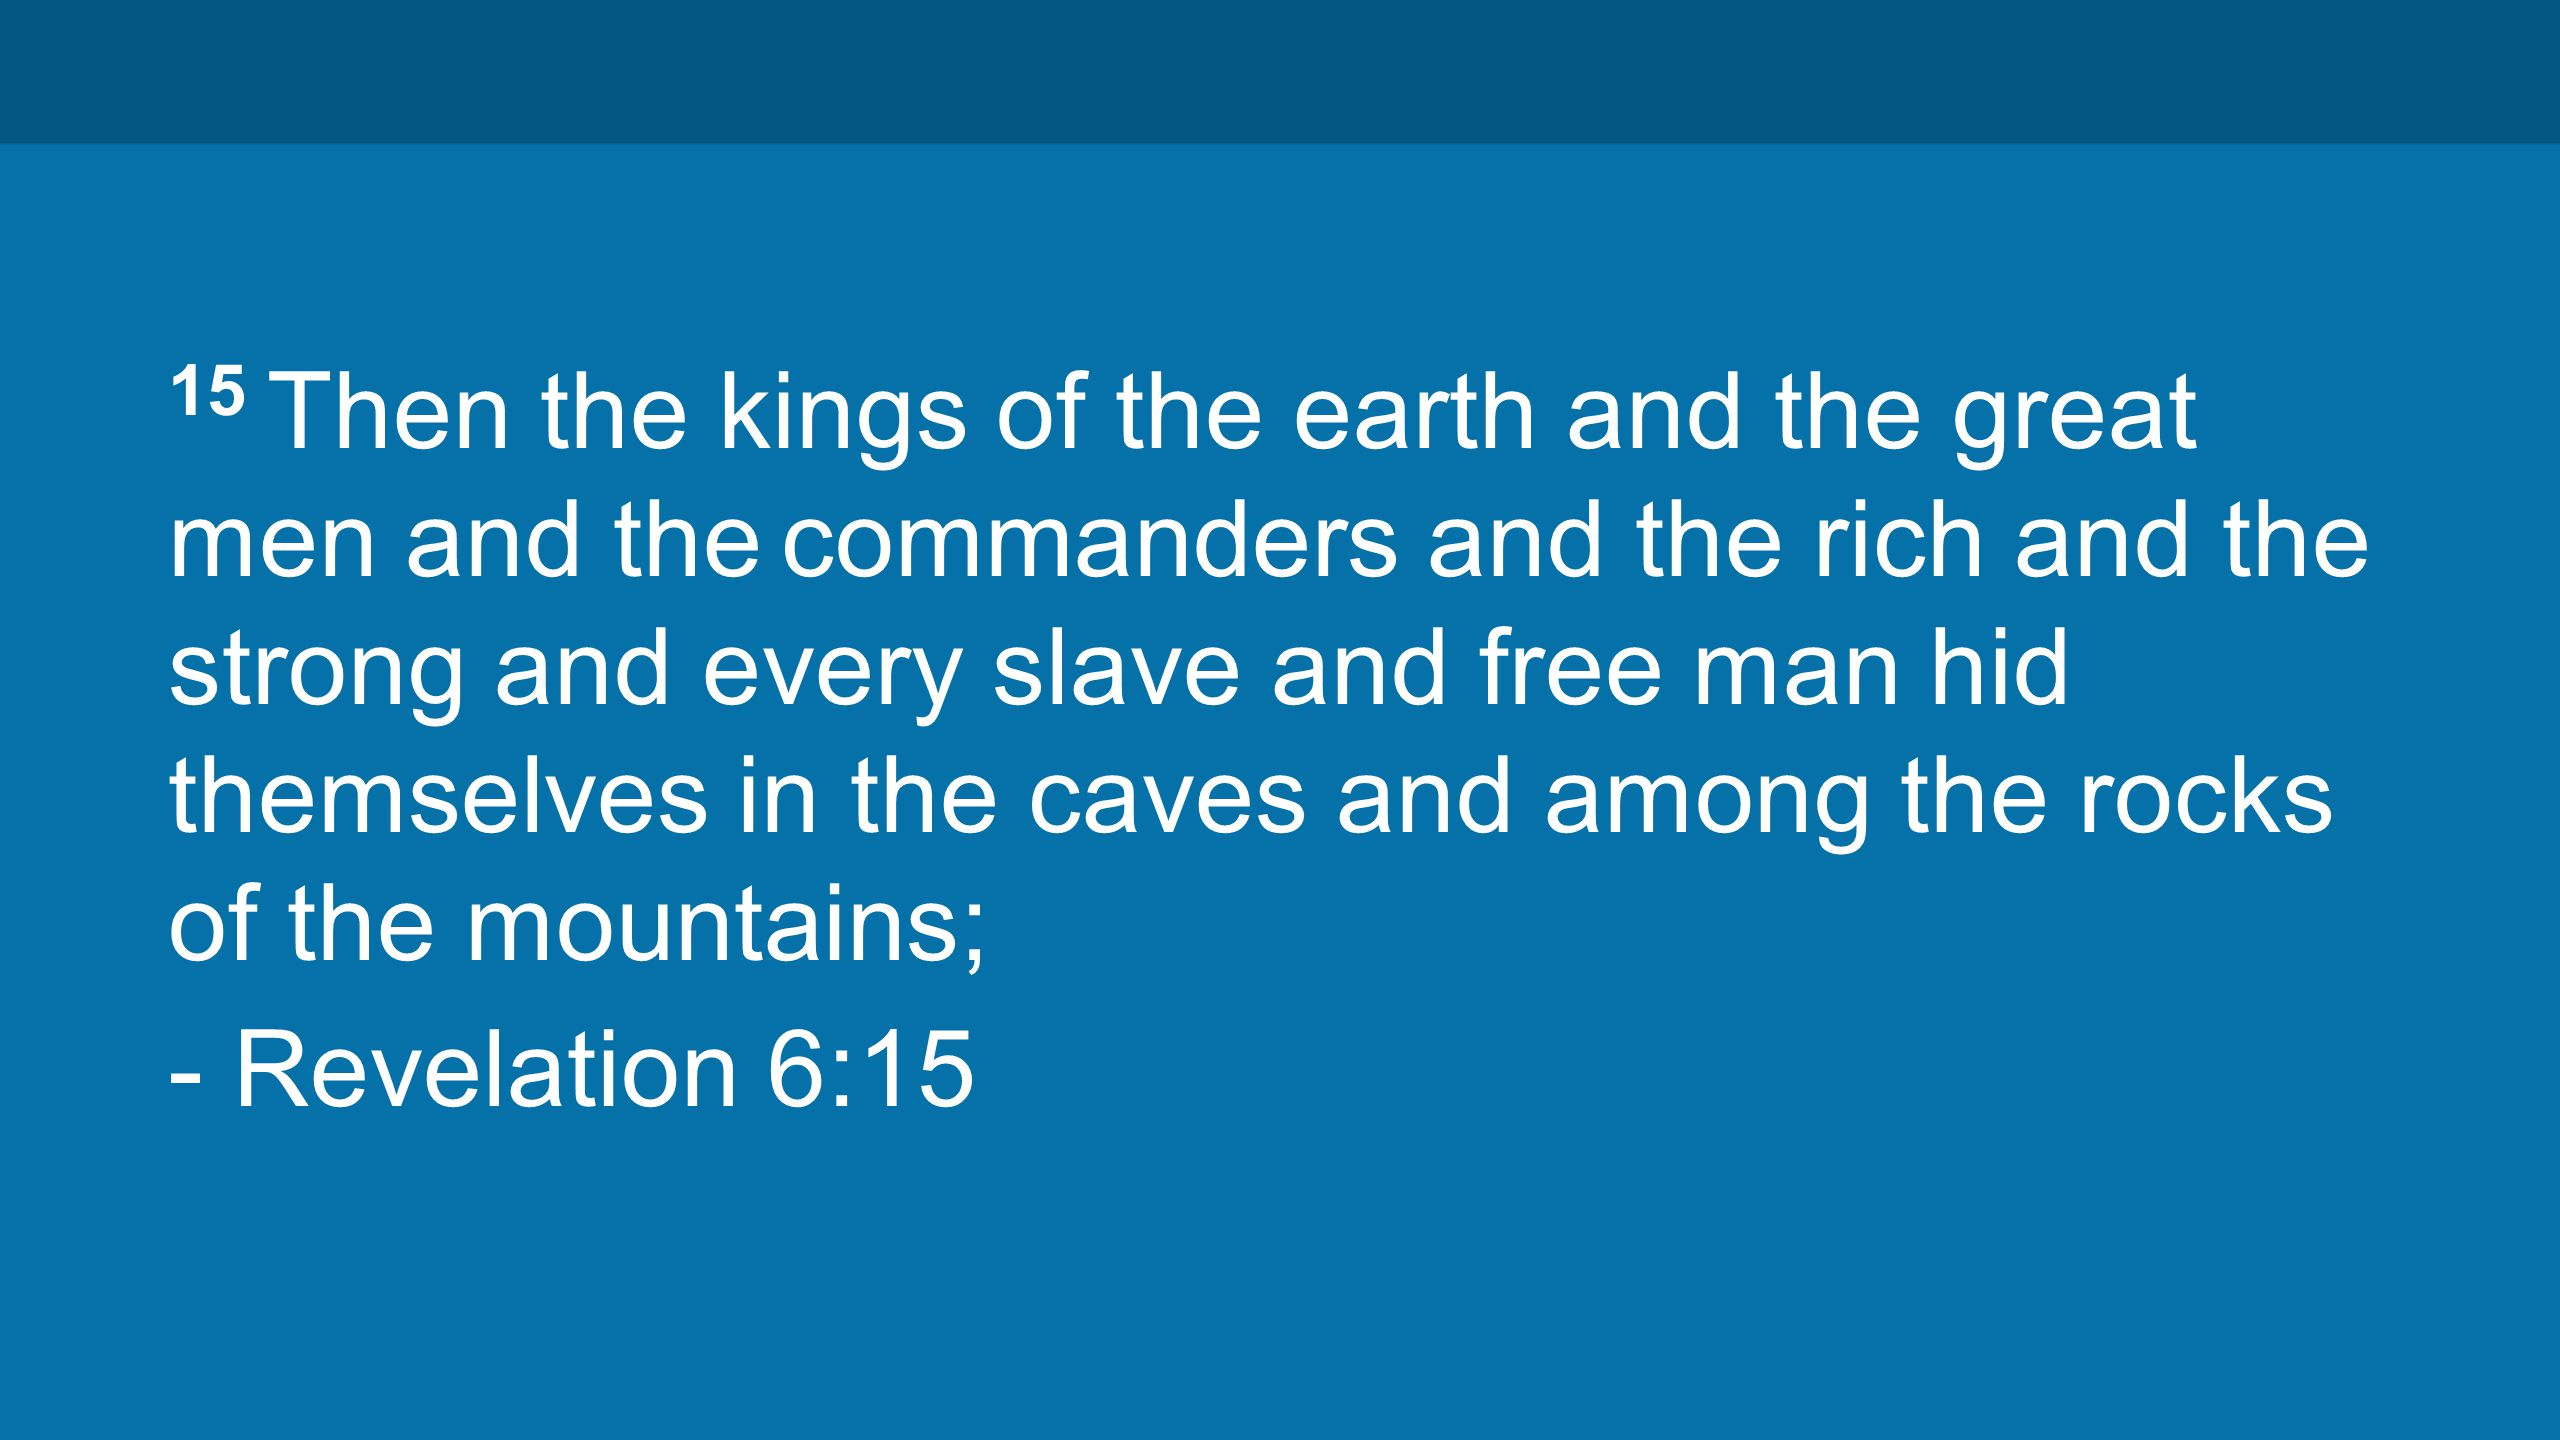 15 Then the kings of the earth and the great men and the commanders and the rich and the strong and every slave and free man hid themselves in the caves and among the rocks of the mountains; - Revelation 6:15